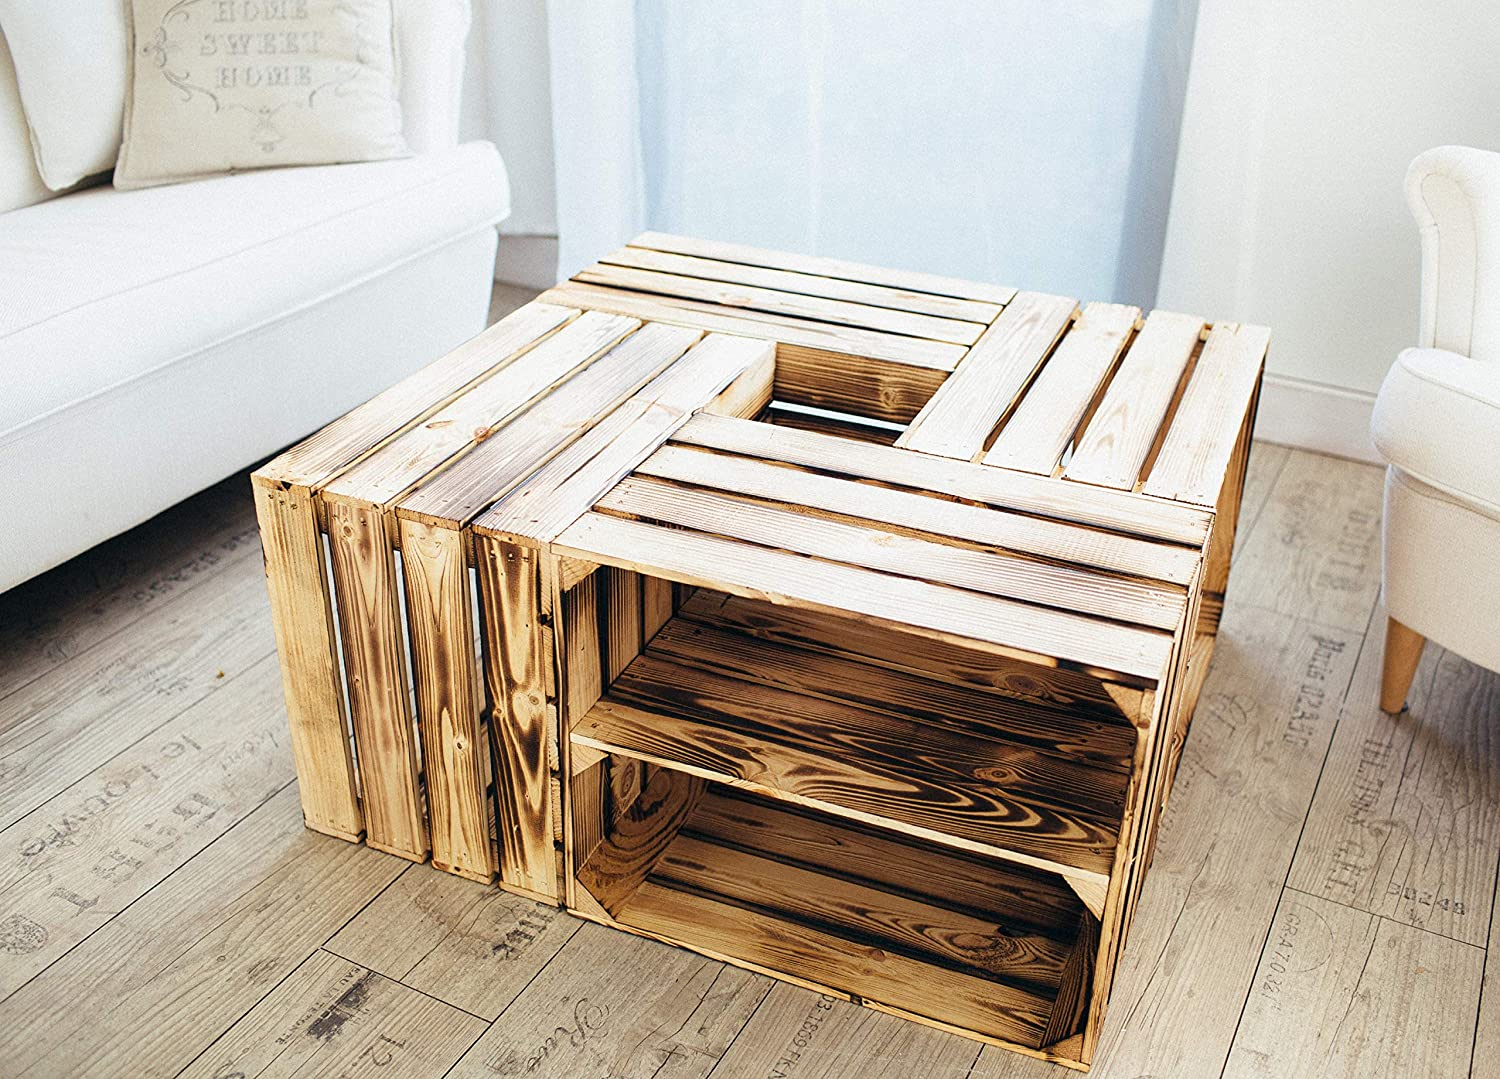 Wooden Crates Flamed 50 x 40 x 30cm with Shelves -for Dekoration- Shoe- or Wine-Rack or Storage Container (1 x long) 2er Set Längs